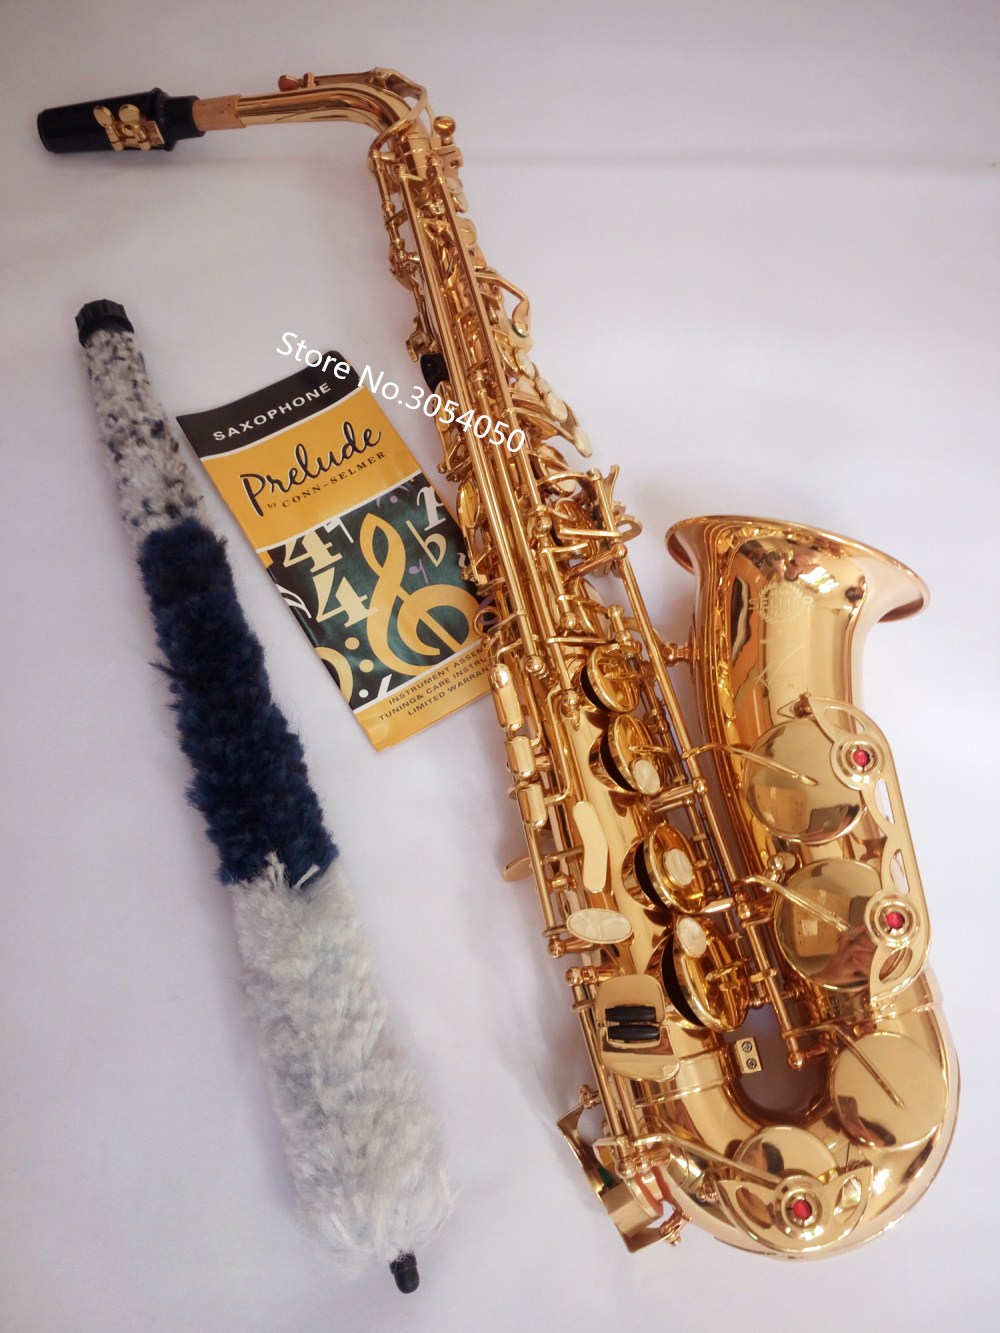 Hot High Quality Alto saxophone musical instrument New SELMER 54 saxophone profissional Reference electrophoresis sax Free tenor saxophone free shipping selmer instrument saxophone wire drawing bronze copper 54 professional b mouthpiece sax saxophone